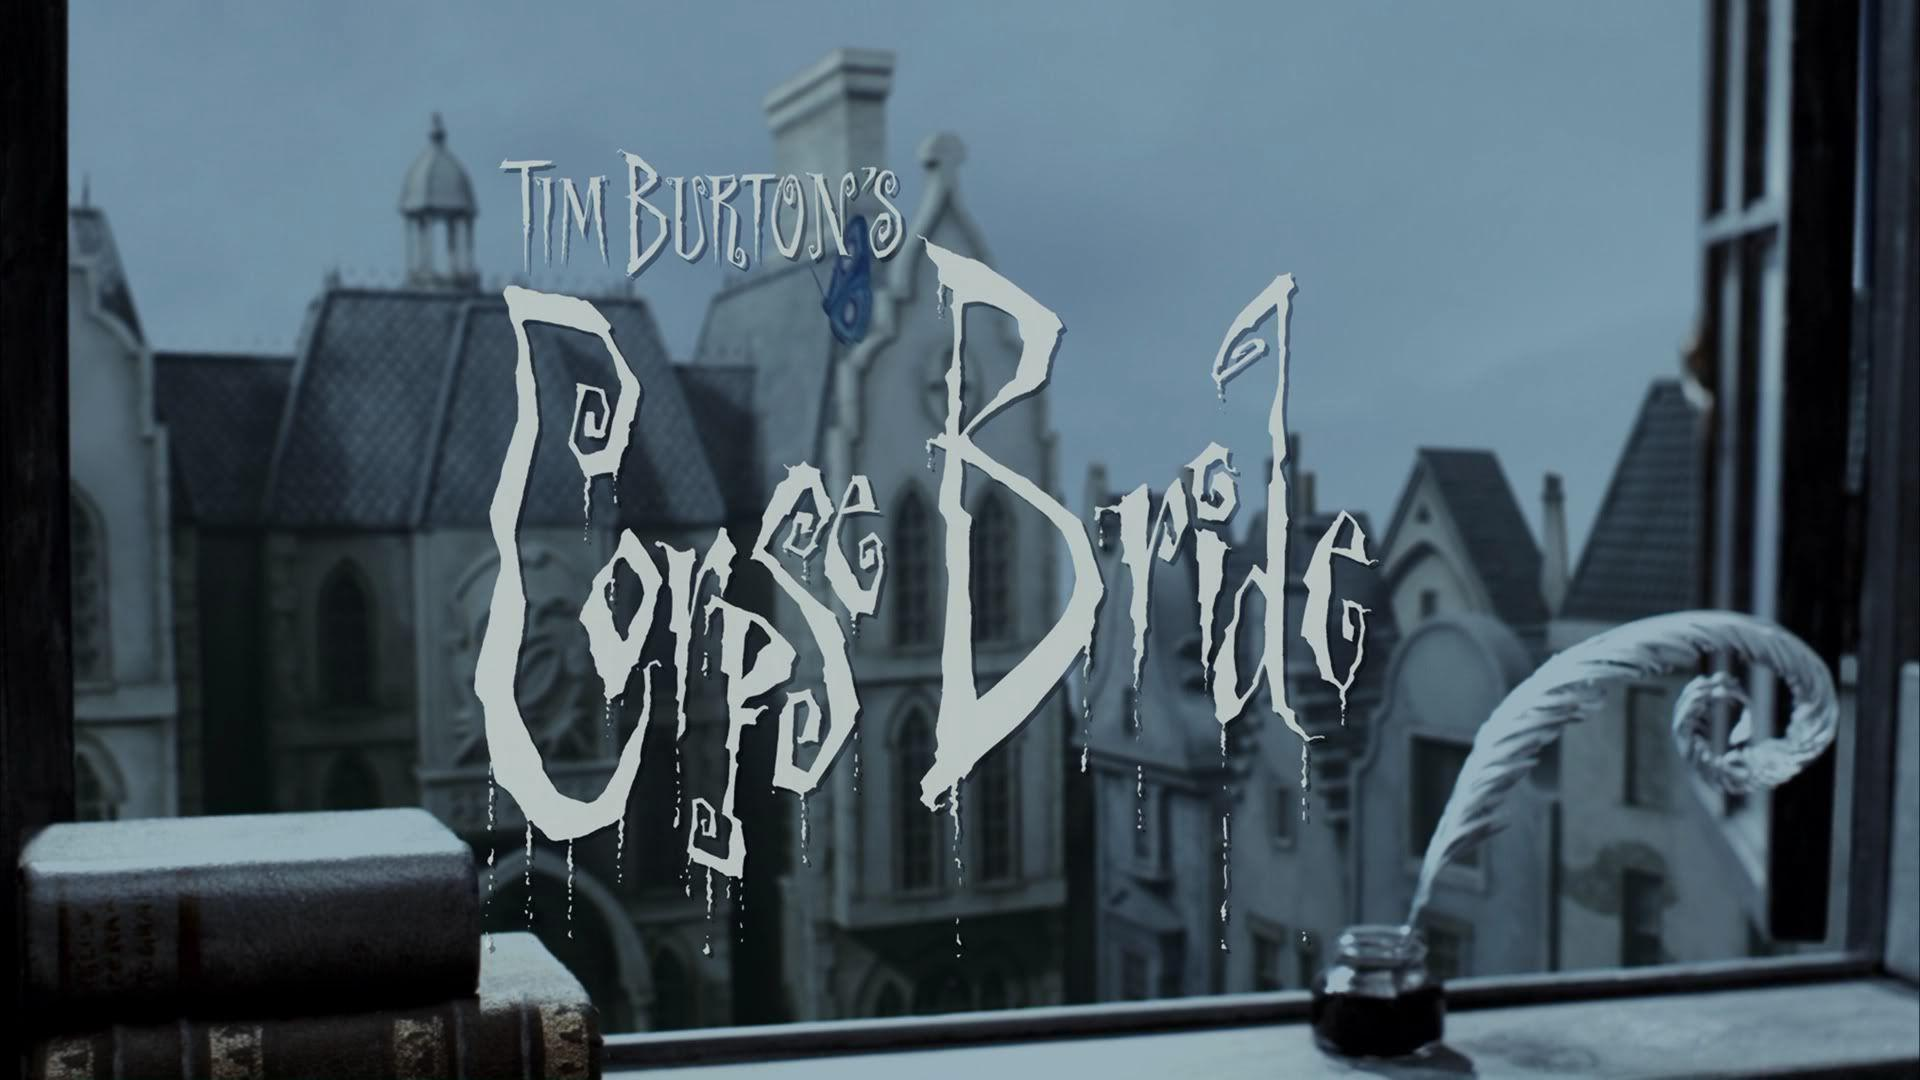 corpse bride movie wallpapers - photo #18